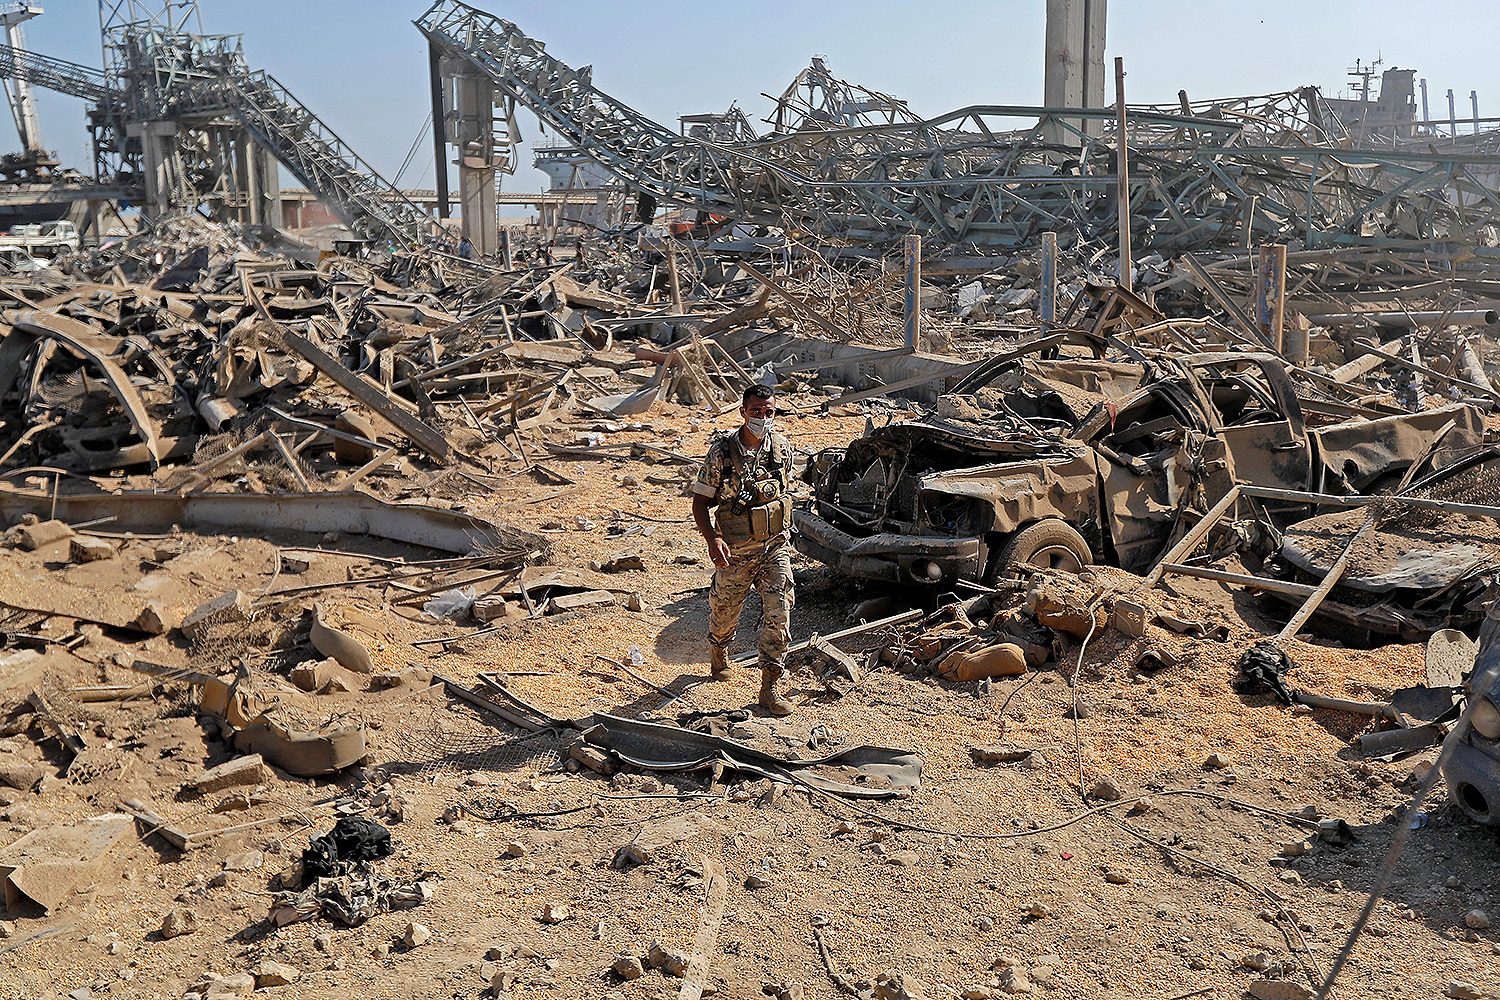 A Lebanese army soldier walks amid debris from the massive blast at the Beirut port on Aug. 7. JOSEPH EID/AFP via Getty Images